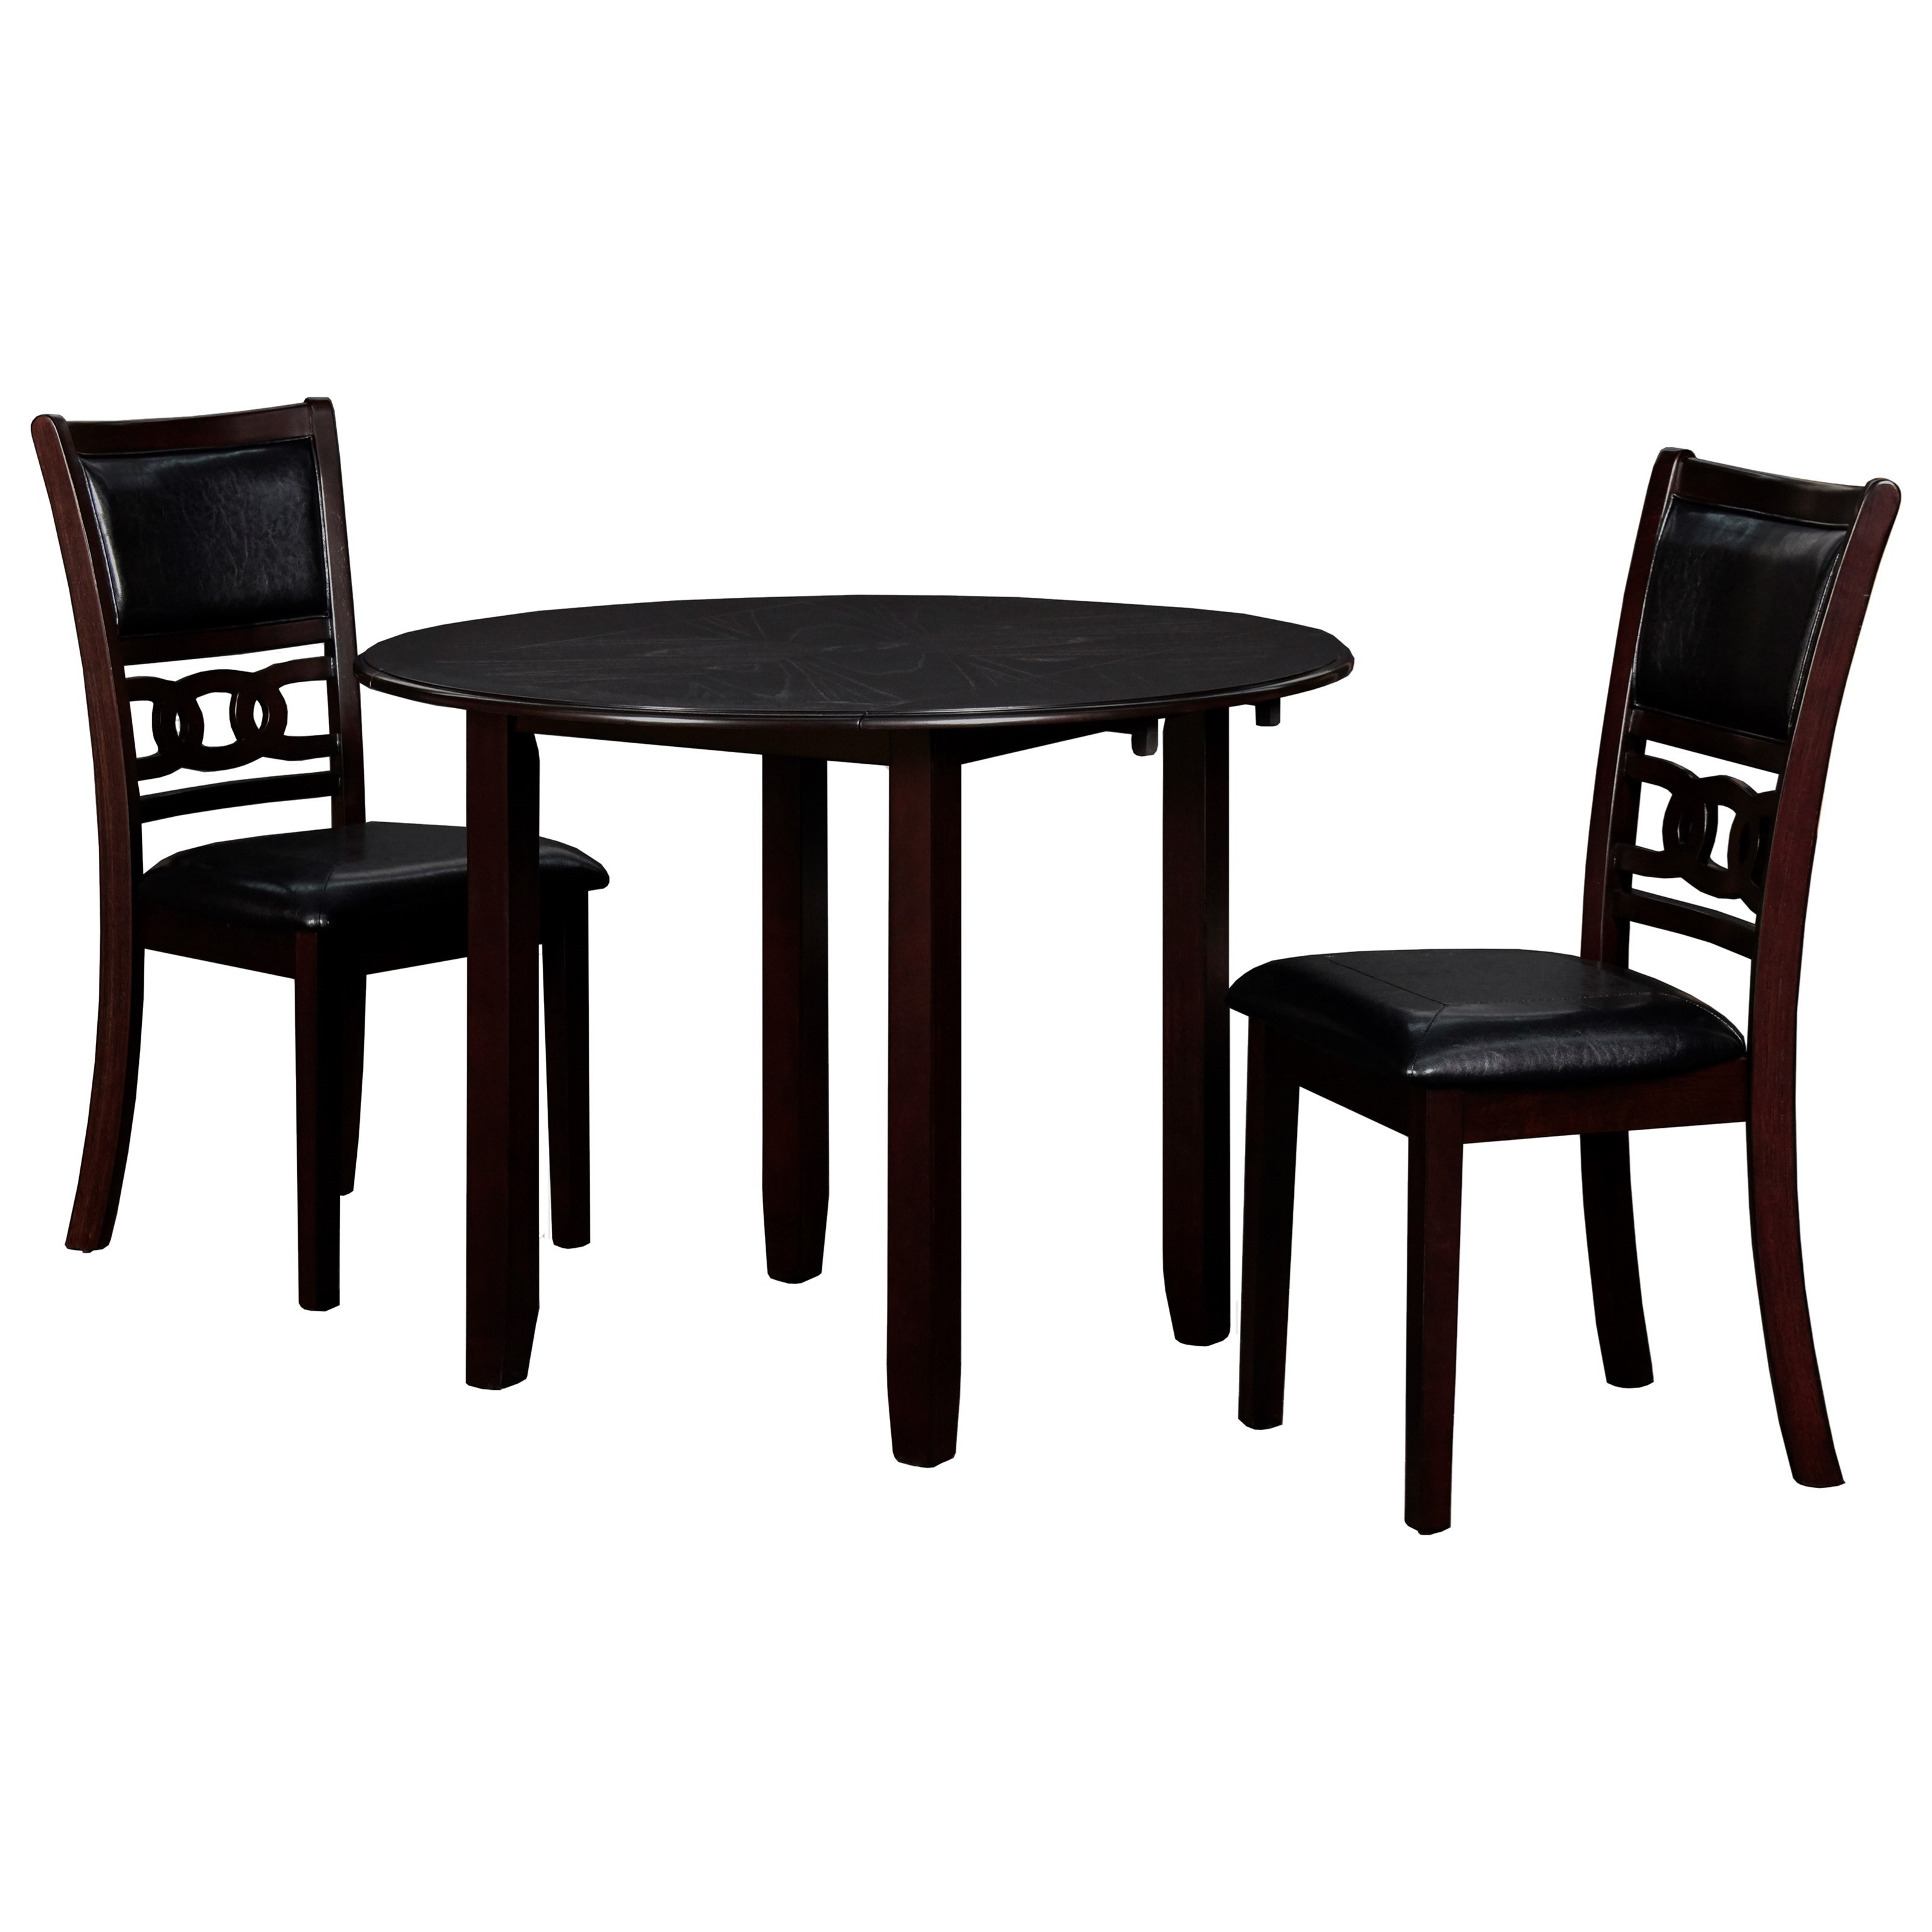 Gia 3-Piece Table and Chair Set by New Classic at Wilcox Furniture